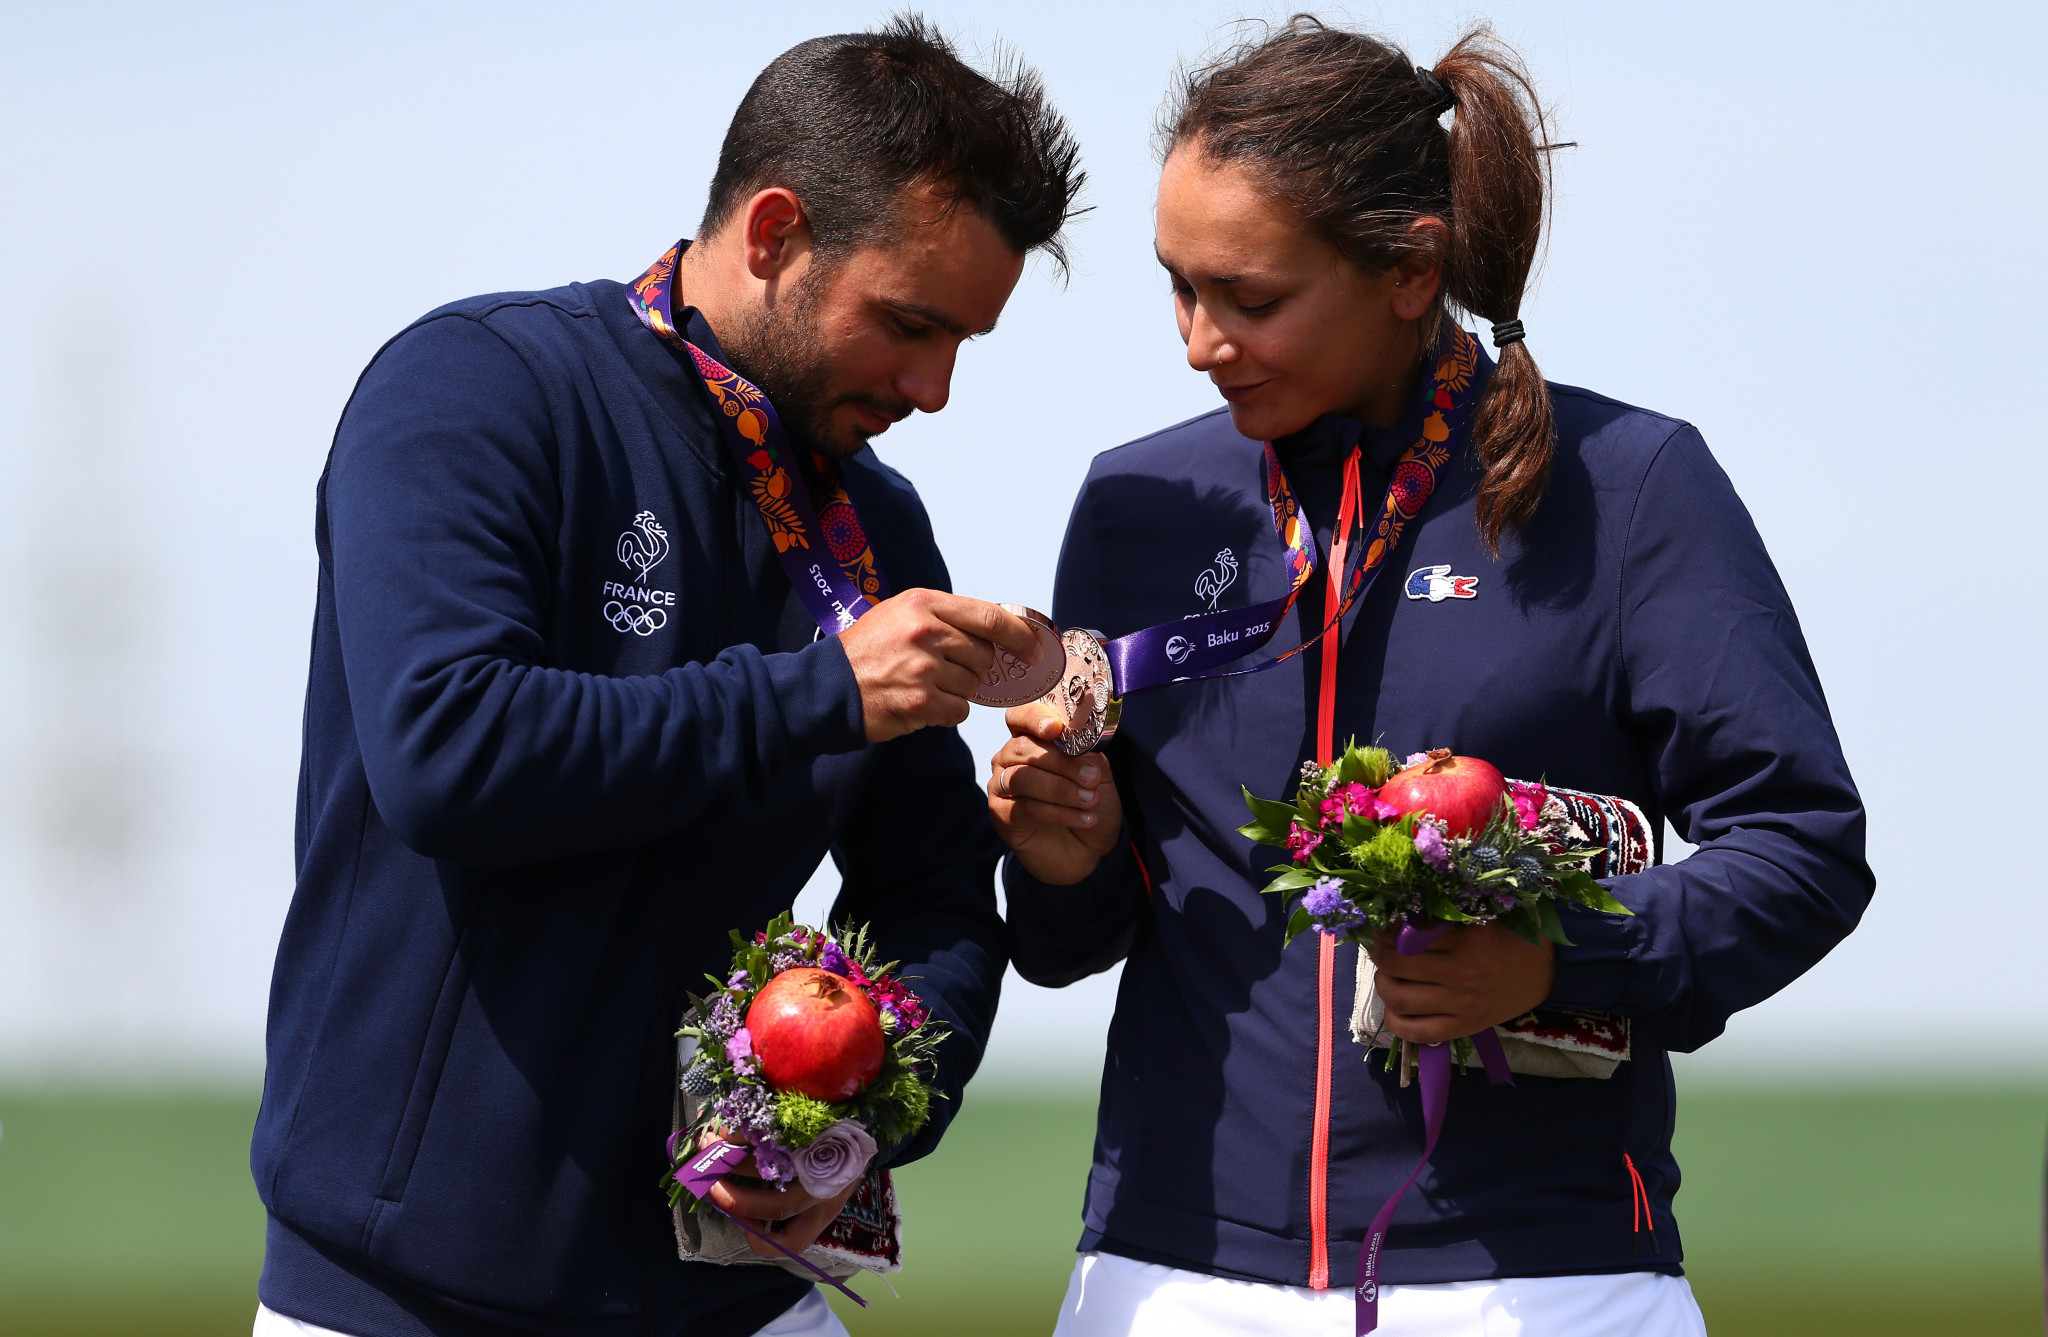 Anthony Terras and Lucie Anastassiou celebrating a medal at the 2015 European Games in Baku ©Getty Images